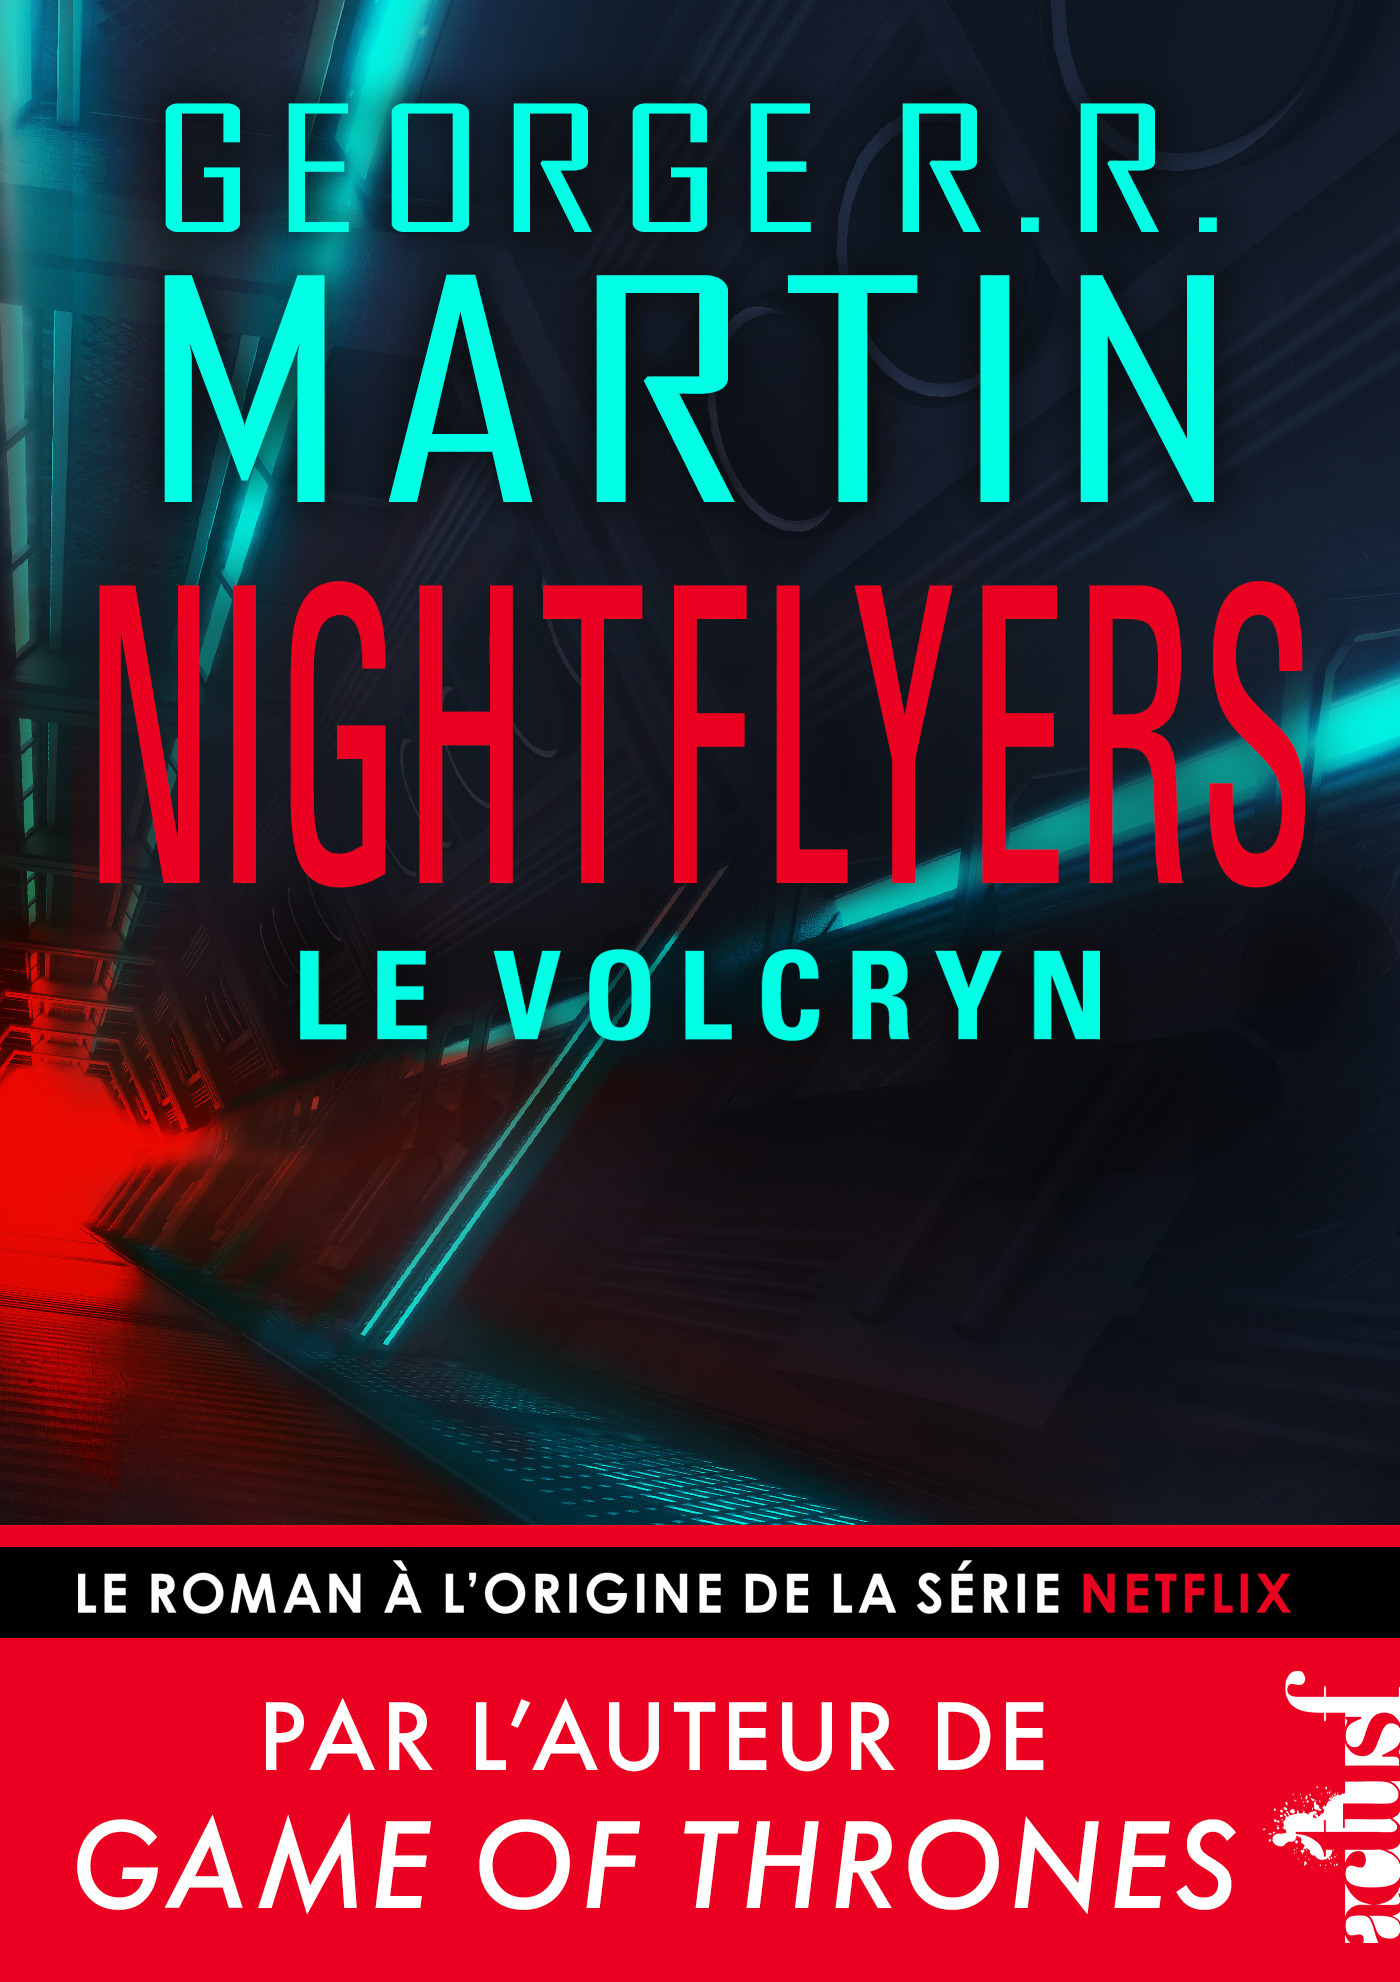 Le Volcryn